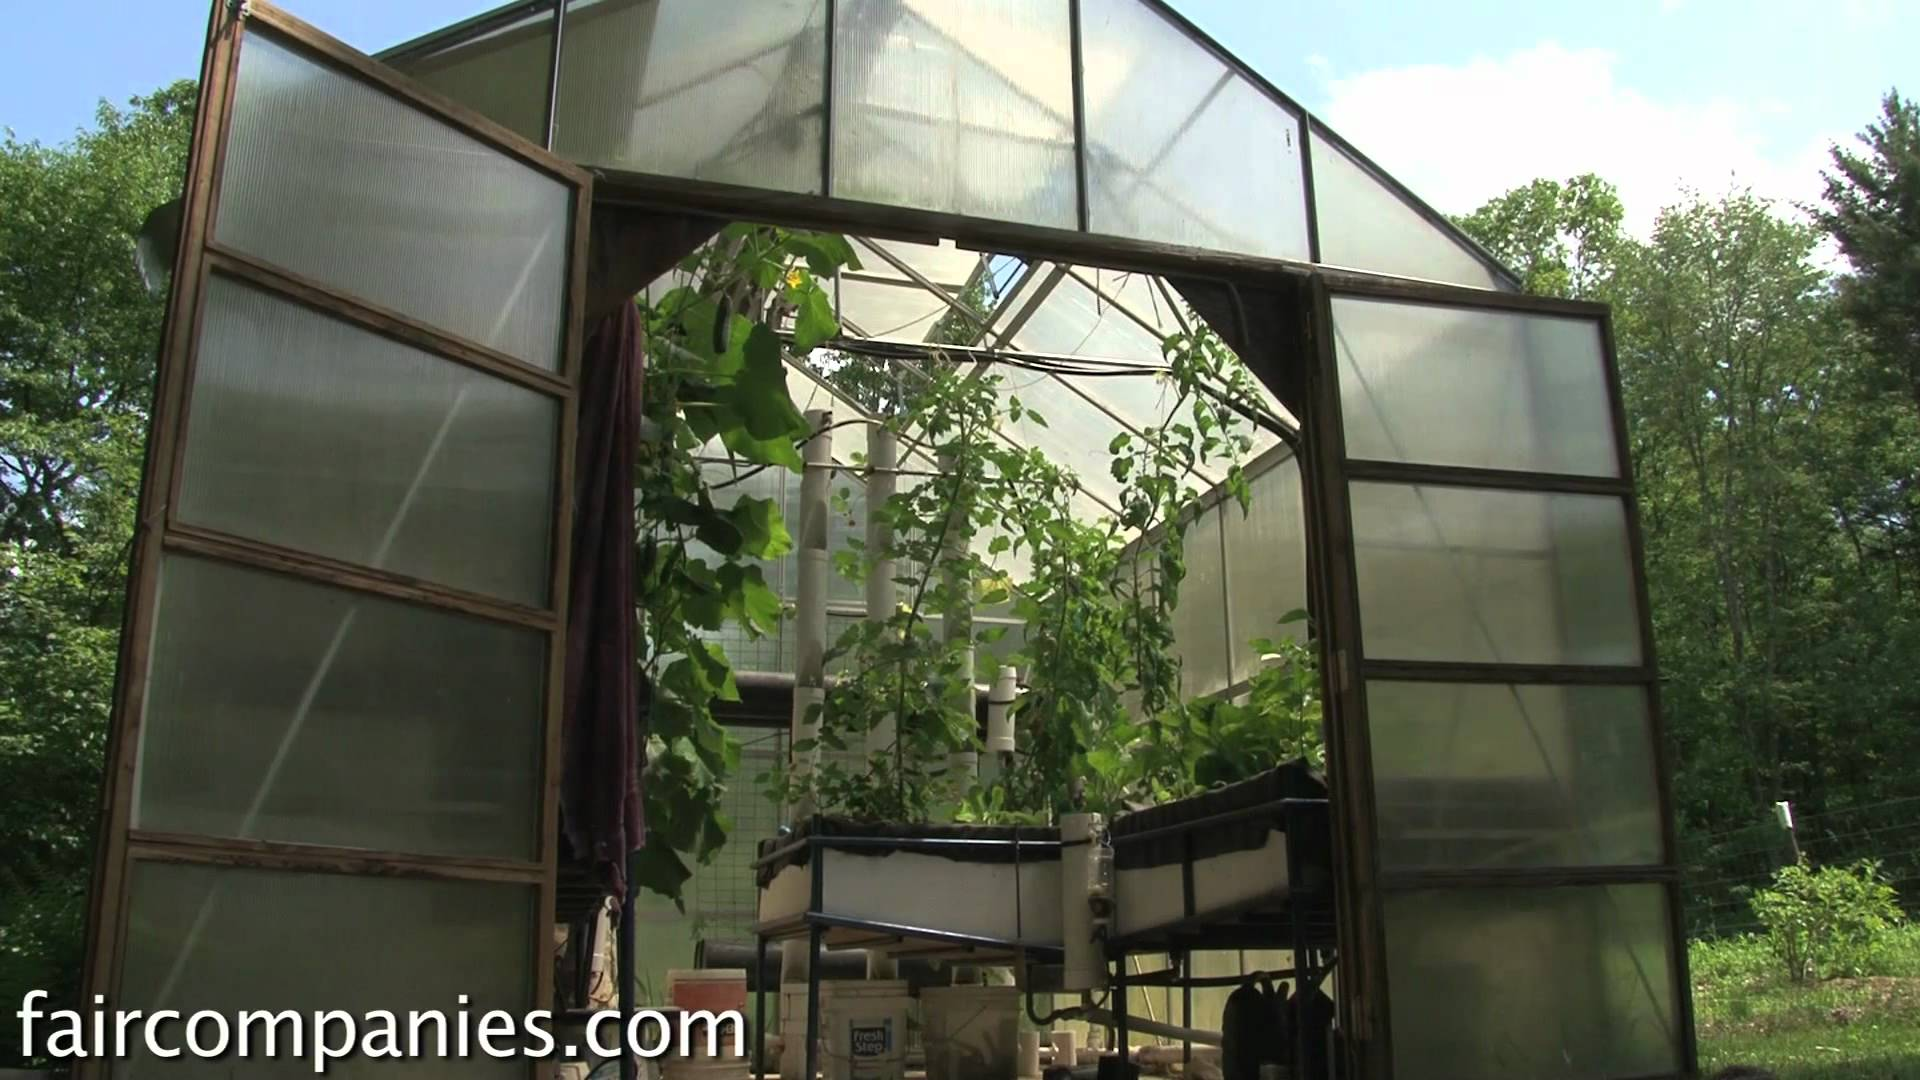 Backyard Aquaponics – A DIY System To Farm Fish With Vegetables...